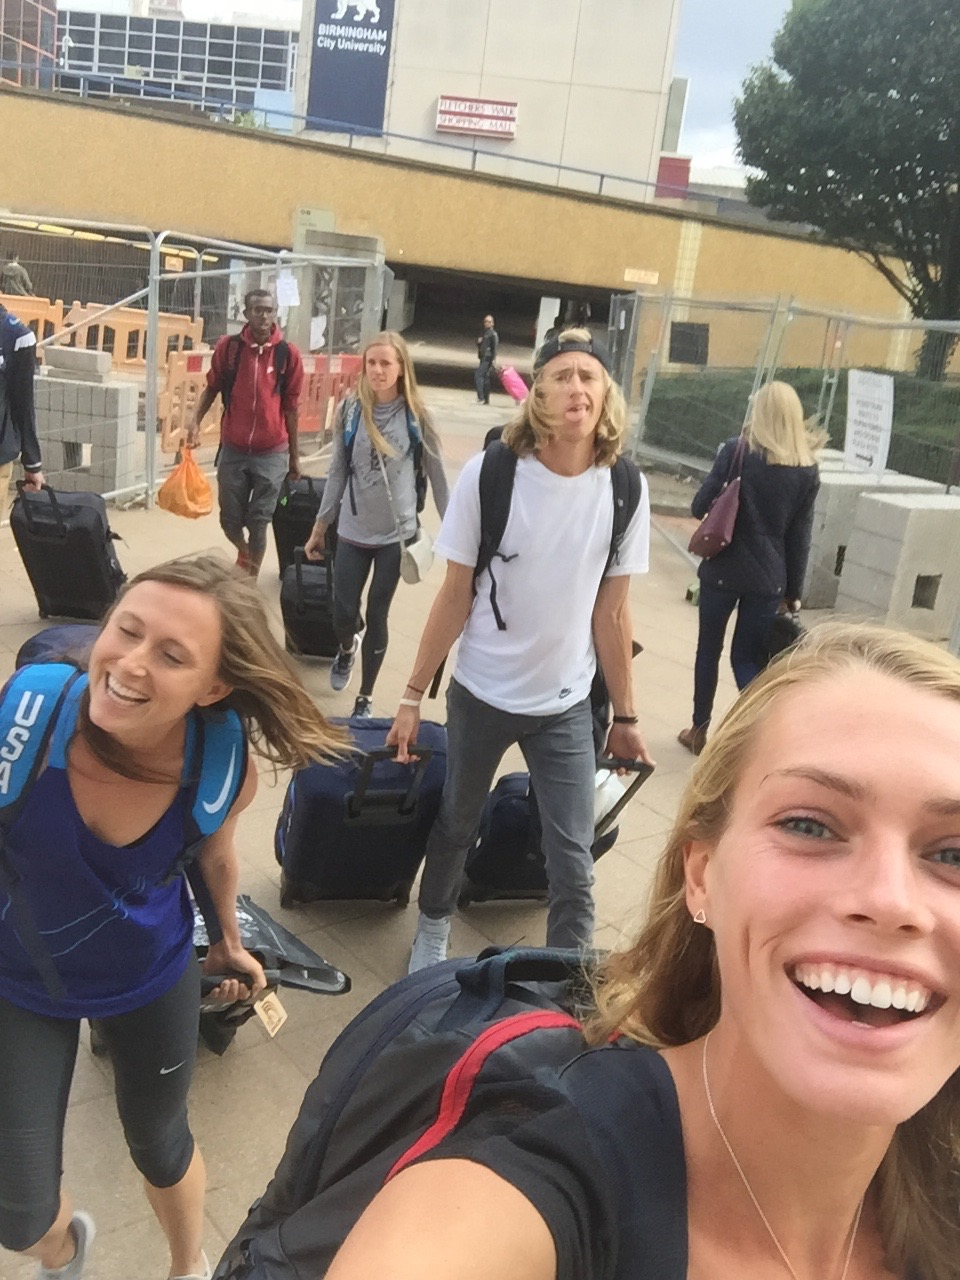 Travel day! Lugging around 100lbs of luggage all summer... good thing we are athletes!